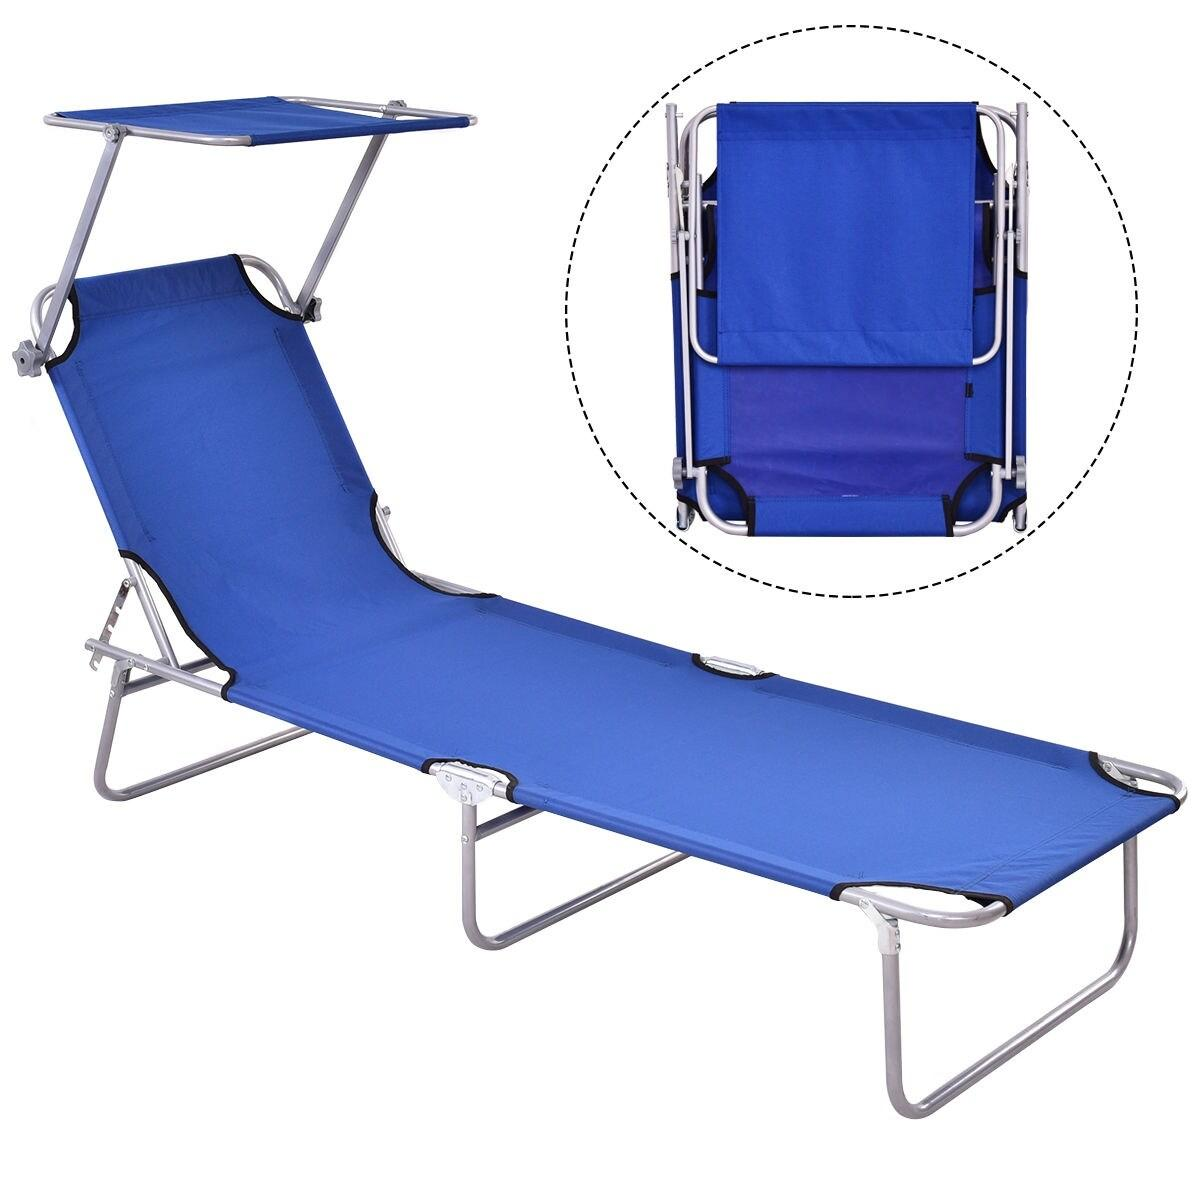 Foldable Relaxing Lounge Beach Chair-Blue - Red